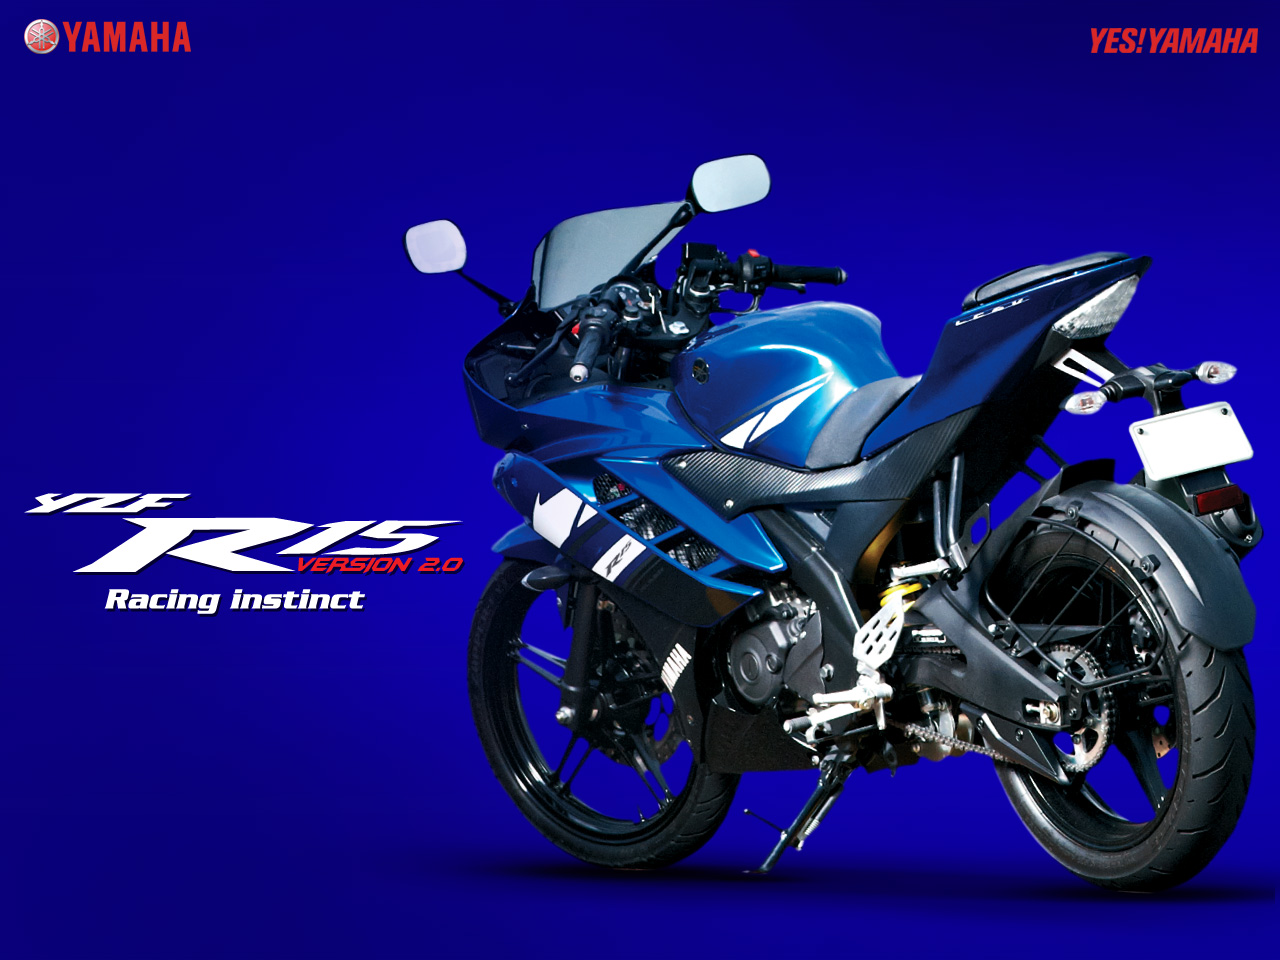 2012 yamaha yzf-r15 version 2.0 in india [wallpaper, colour and